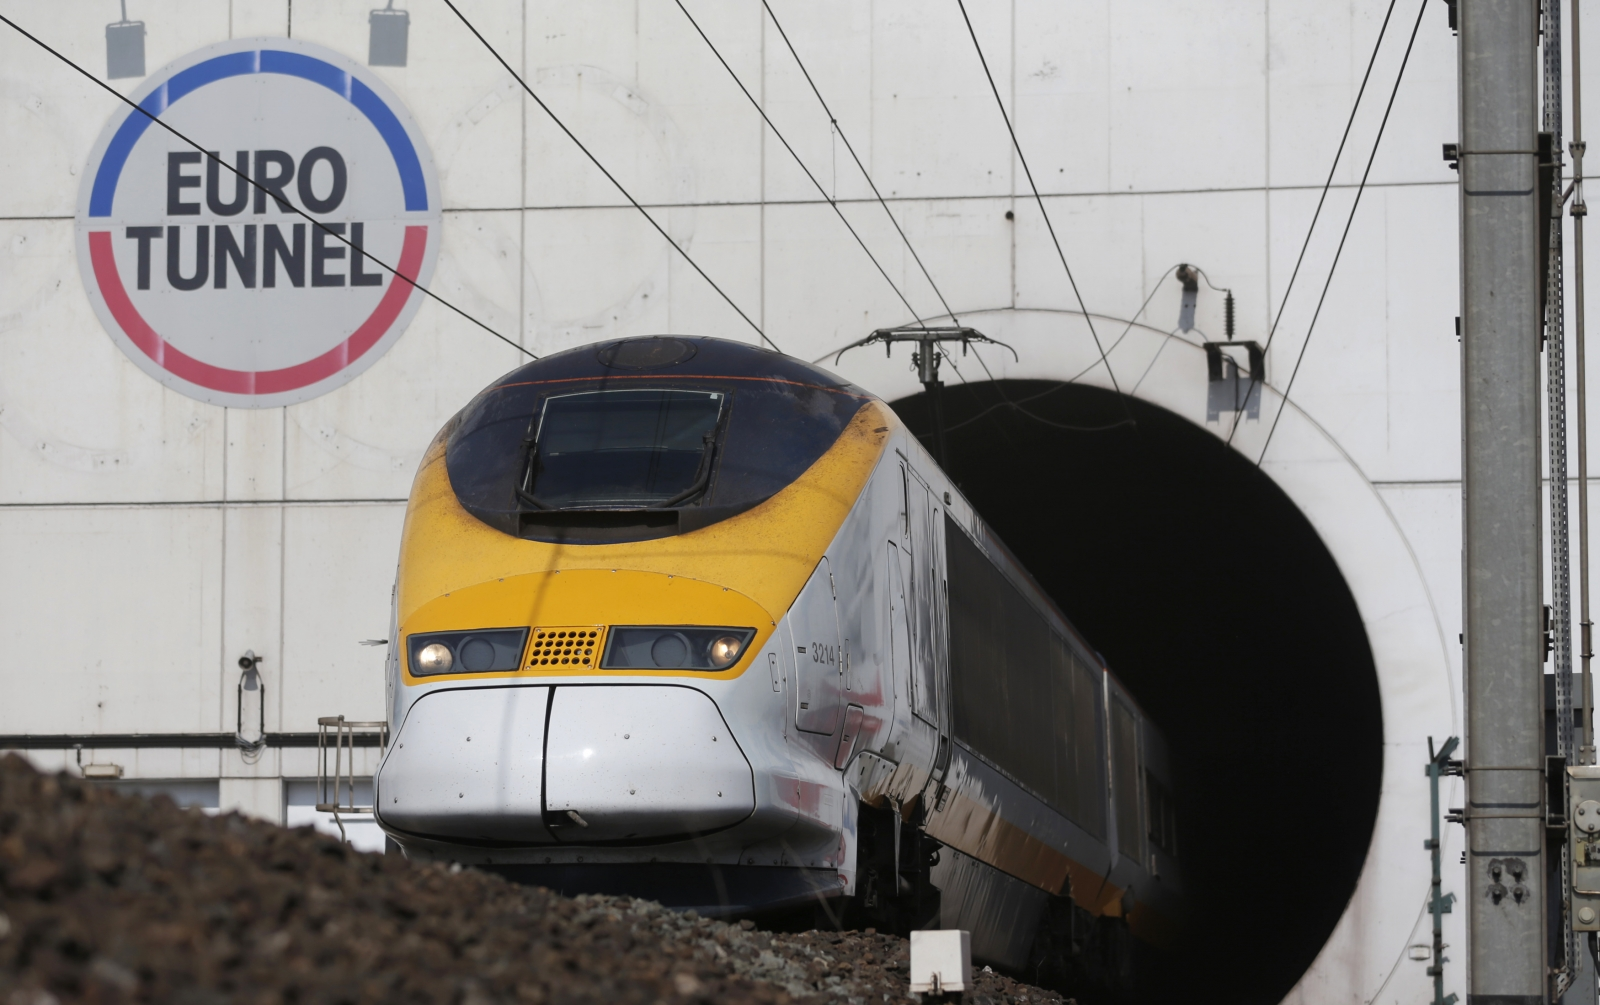 Eurostar at 20: In Numbers